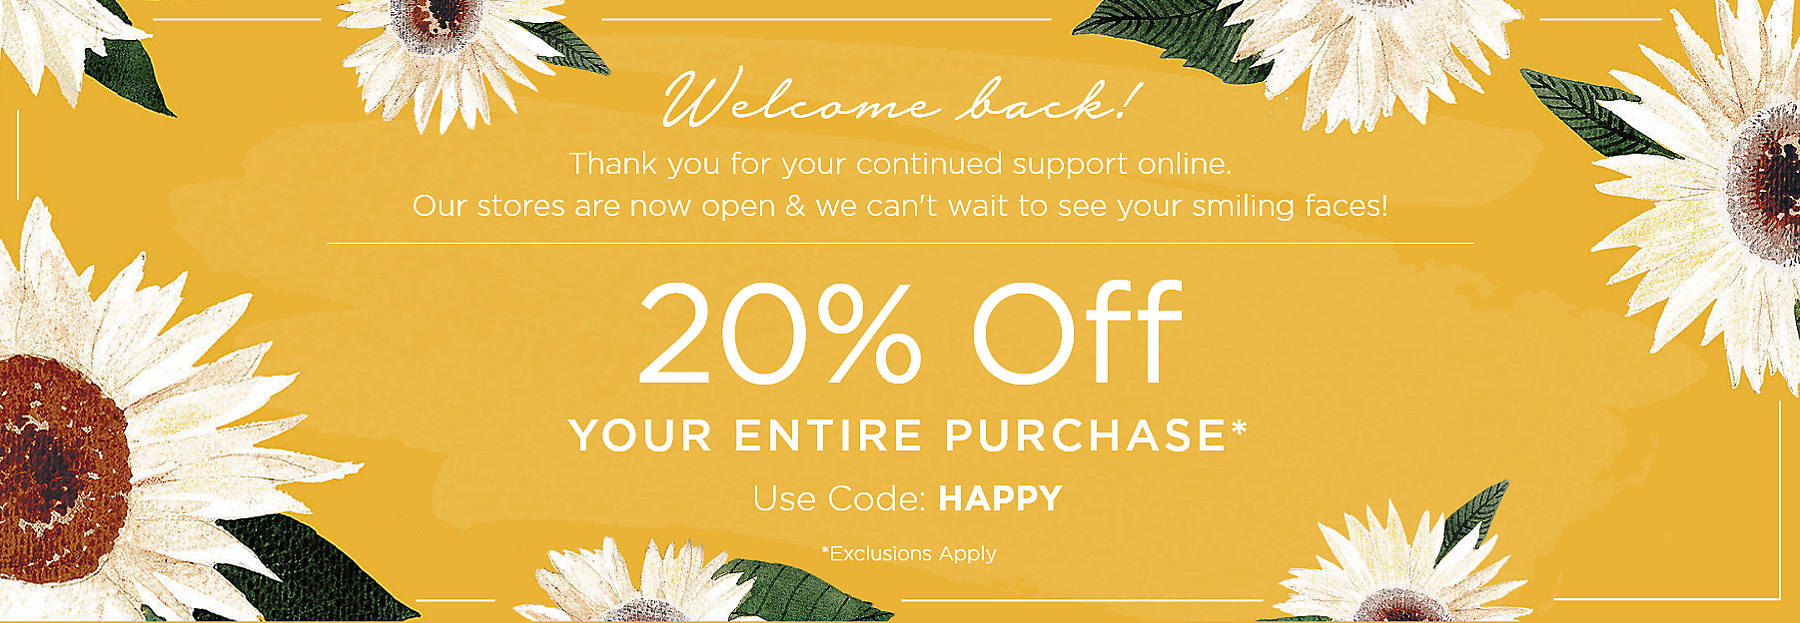 Welcome back! Thank you for your continued support online. Our stores are now open & we can't wait to see your smiling faces! 20% Off Your Entire Purchase* Use Code: HAPPY Exclusions Apply